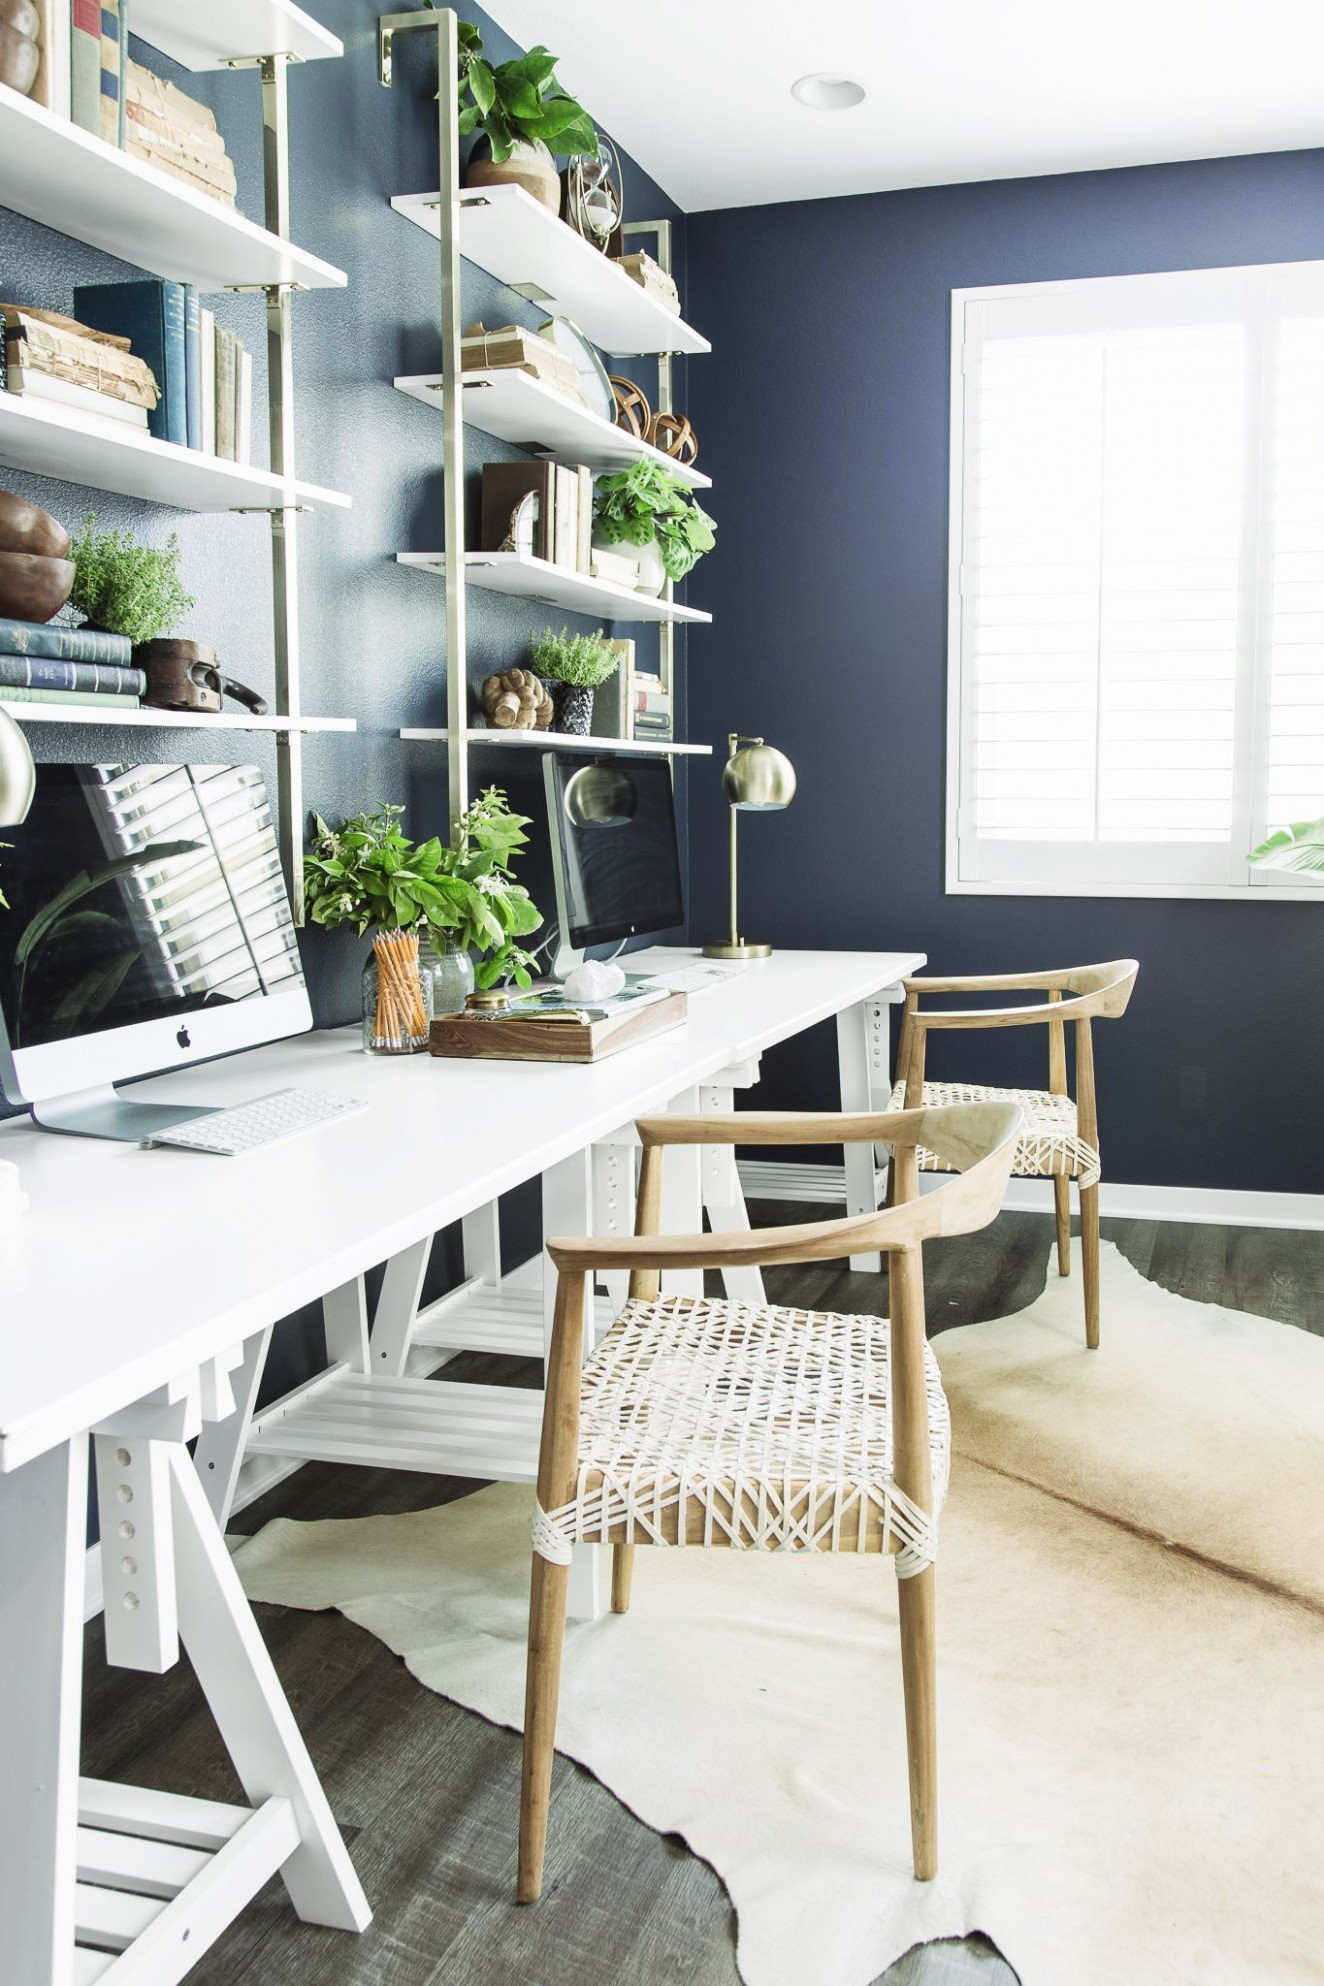 12 Best Home Office Ideas - How to Decorate a Home Office - Home Office Renovation Ideas